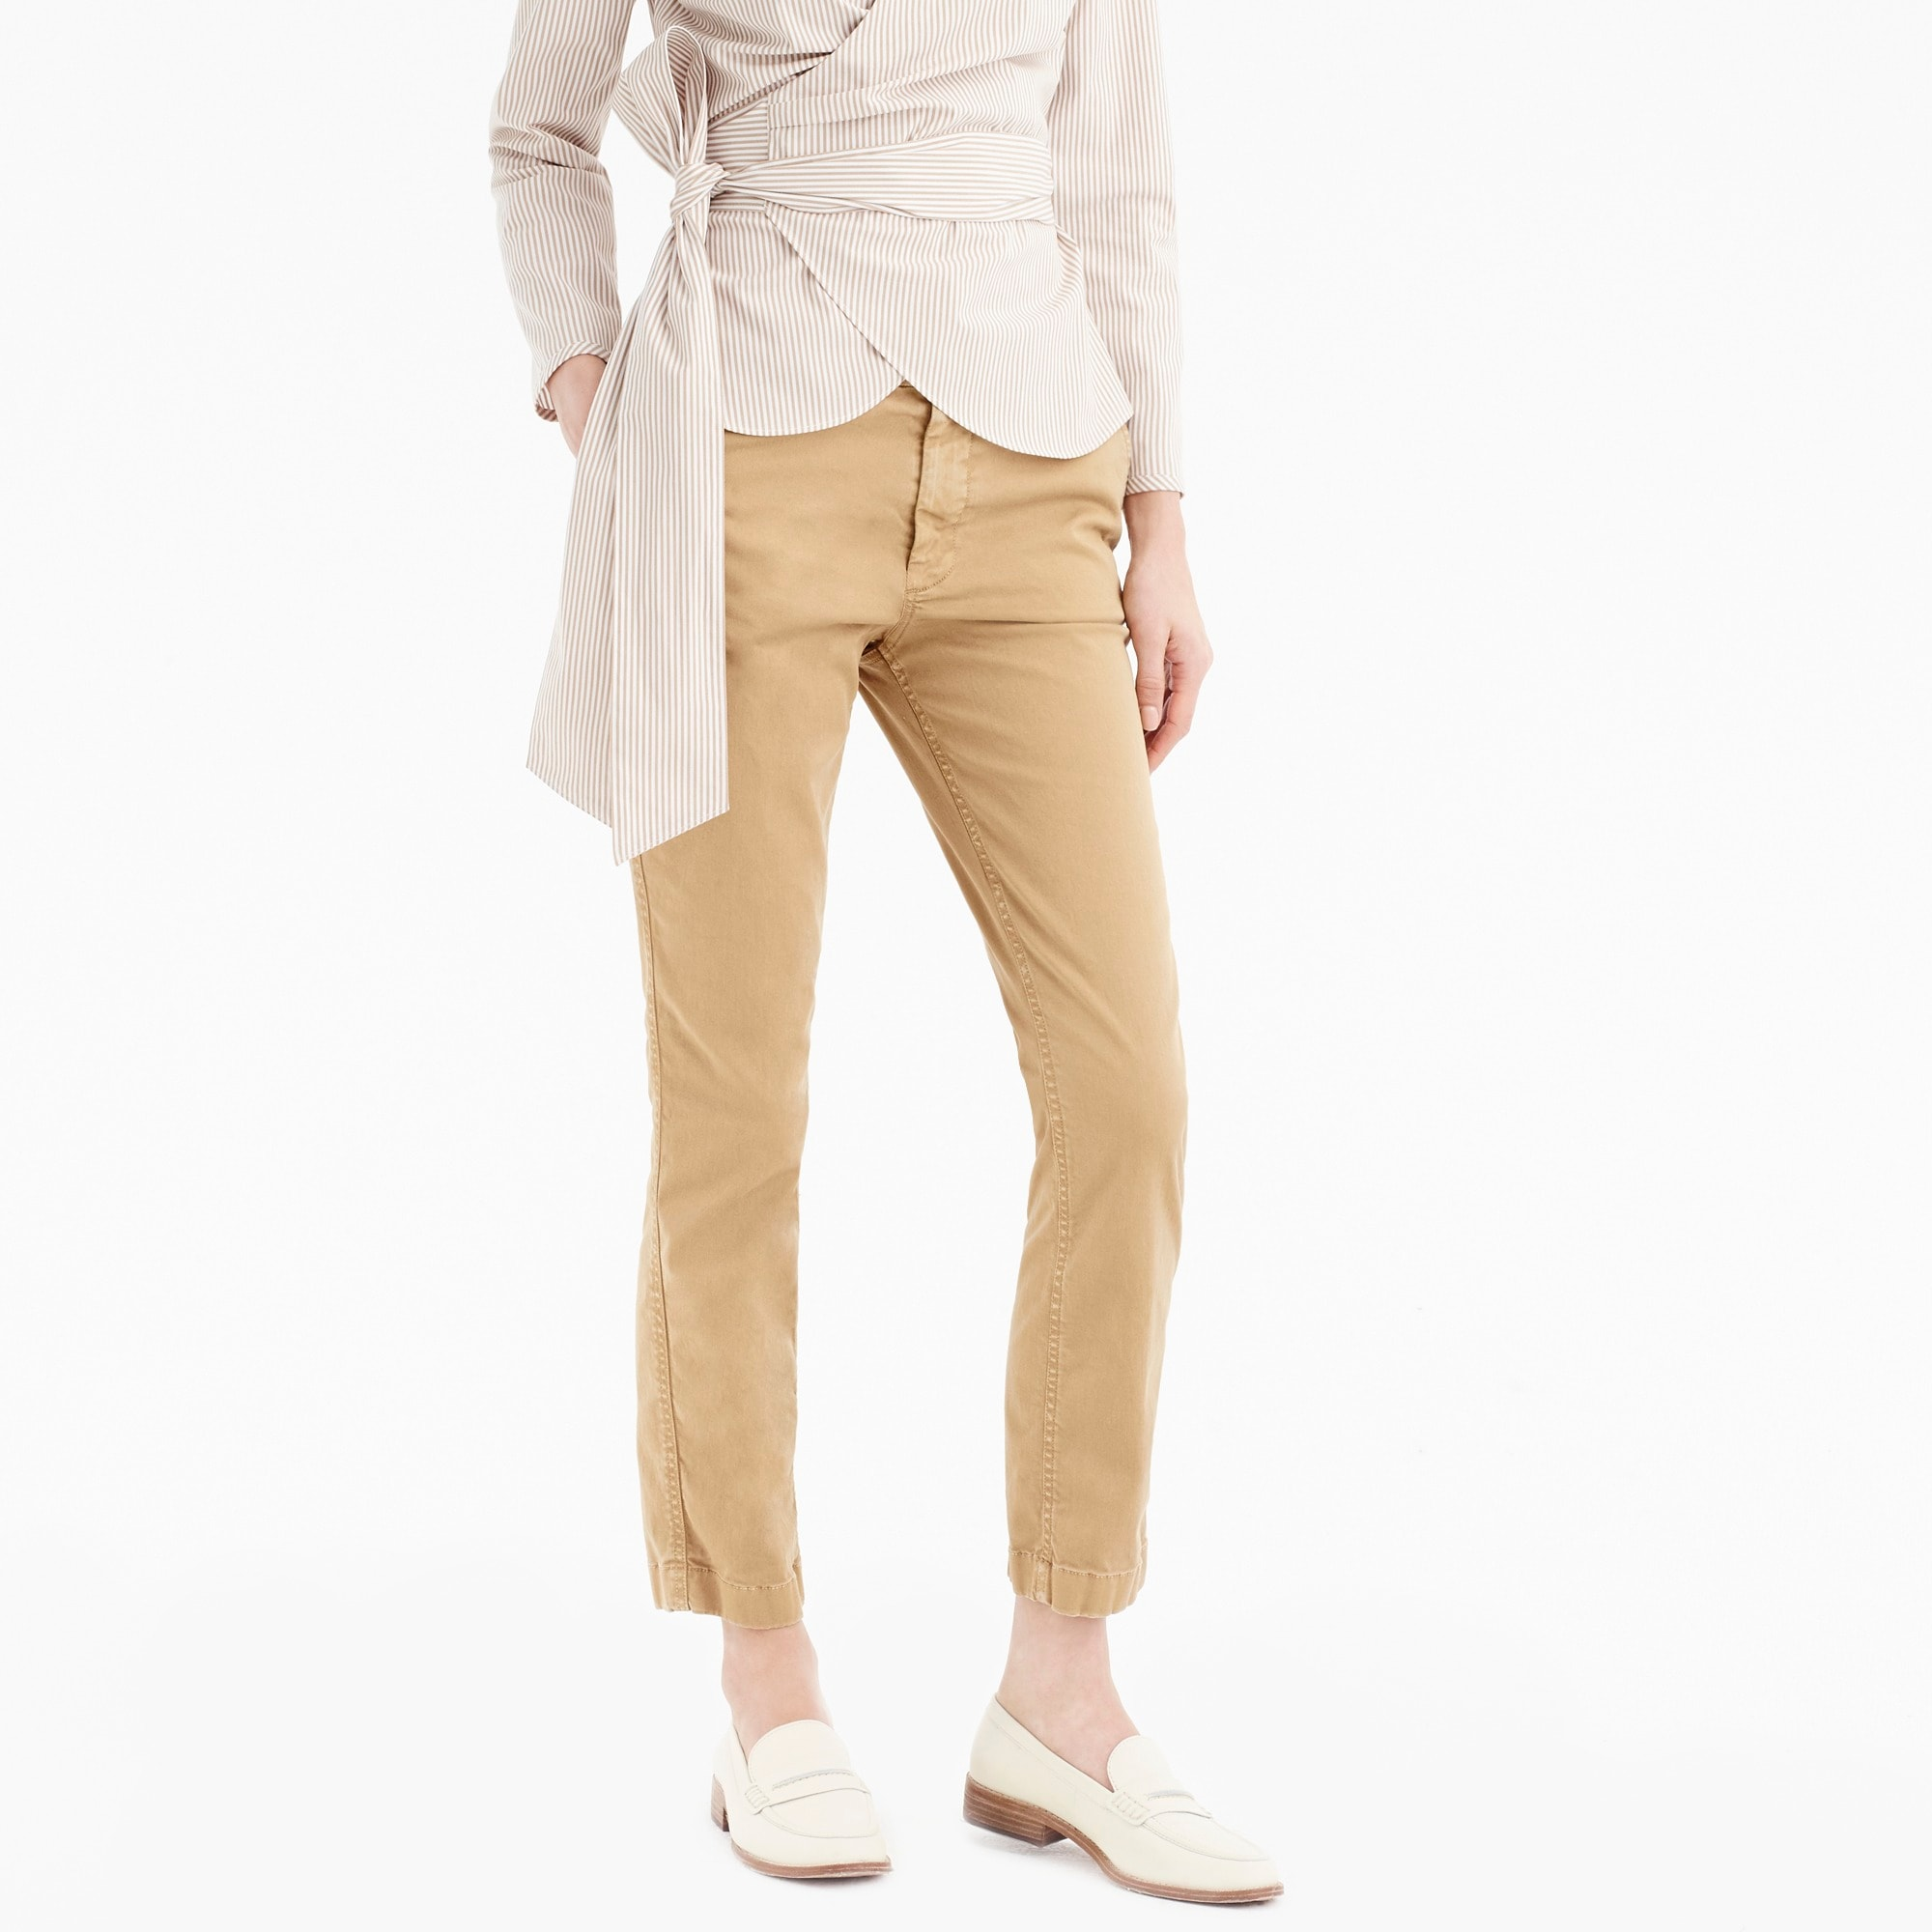 womens High-rise slim boy chino pant